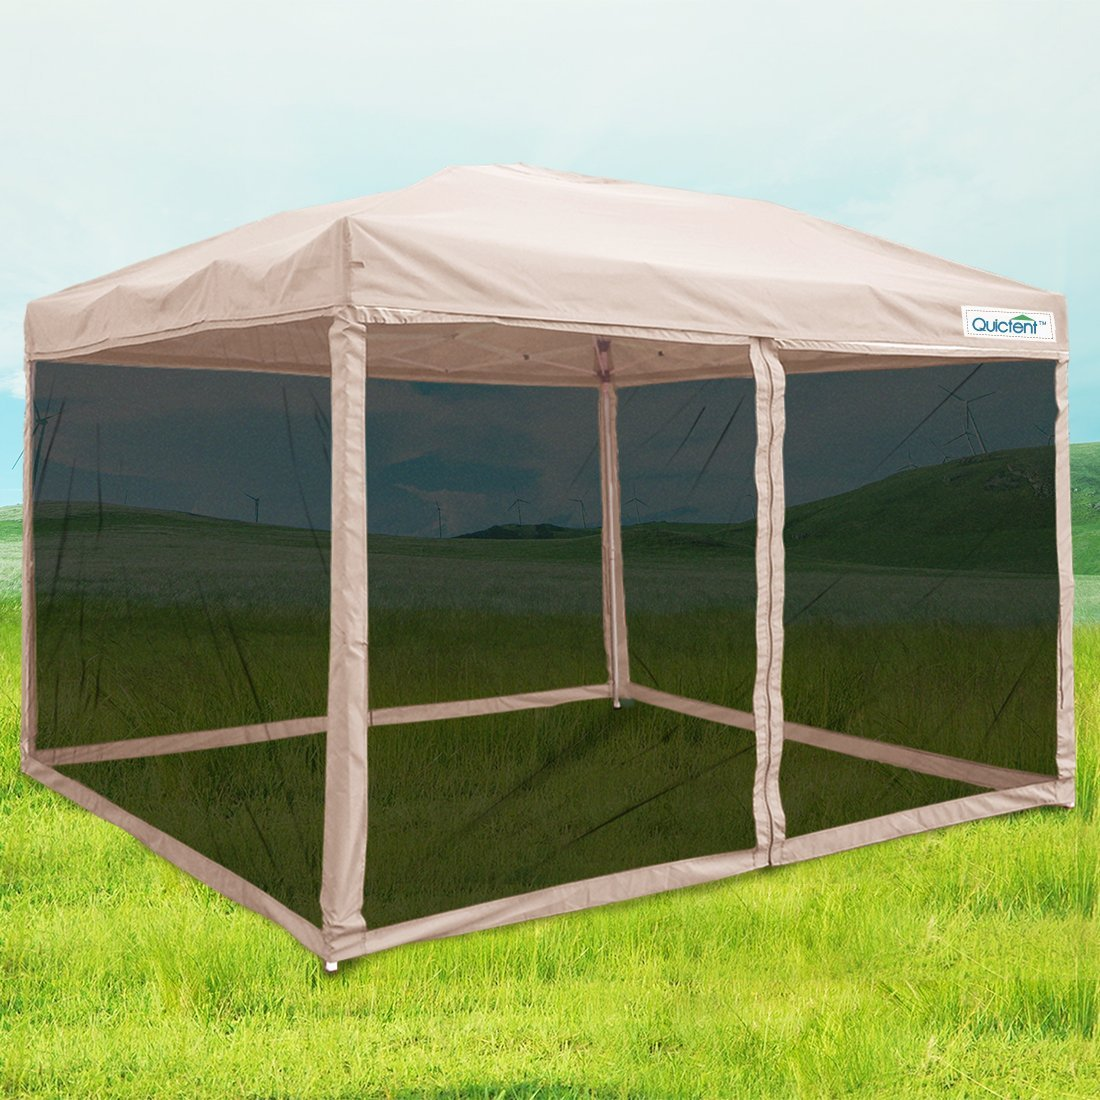 Quictent 10x10 Ez Pop up Canopy Screen House Tent with Netting Patio Gazebo Mesh Side Wall & E-Z Up Canopies